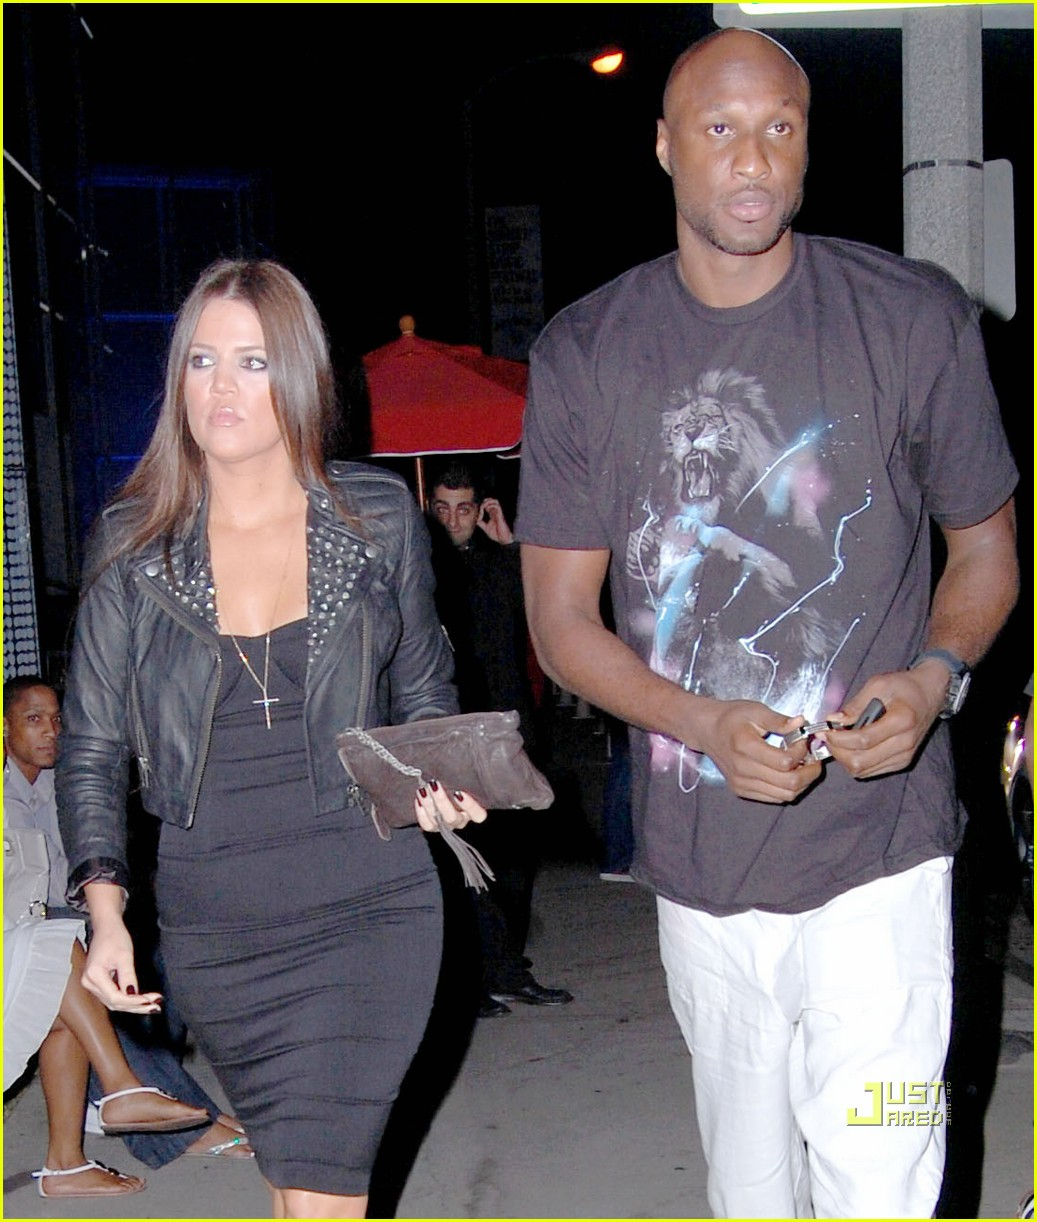 lamar odom dating list Actress and comedian, tiffany haddish is reportedly seeing former nba star and khloé kardashian's ex-husband, lamar odom according to reports, the pair have known each oth.